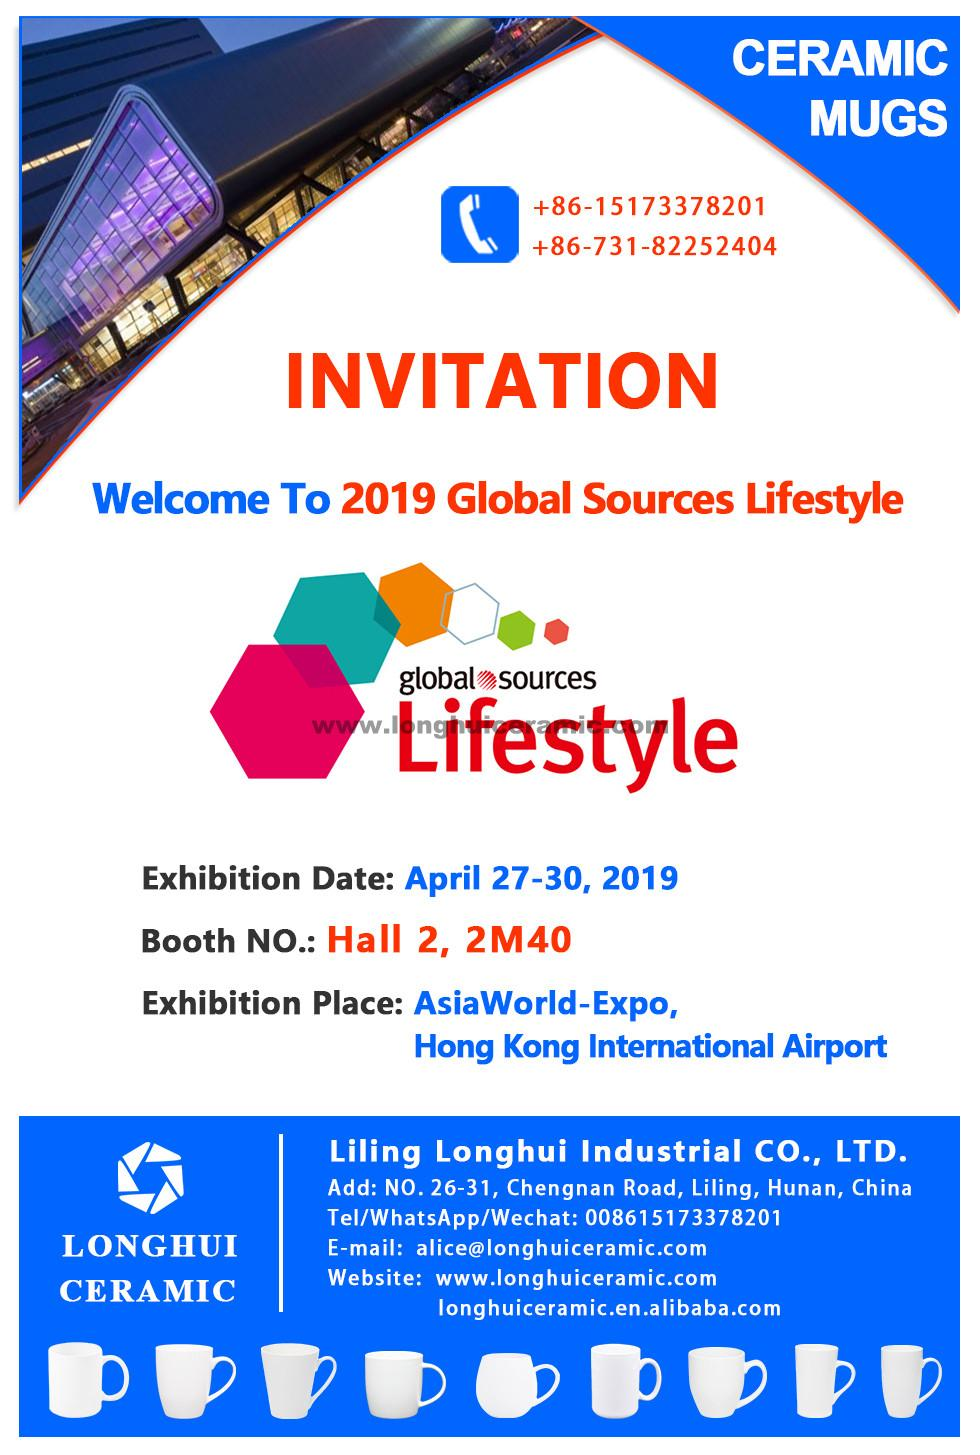 Liling Longhui Ceramic Booth is Hall 2, 2M40, 2019 Global sources Lifestyle Show